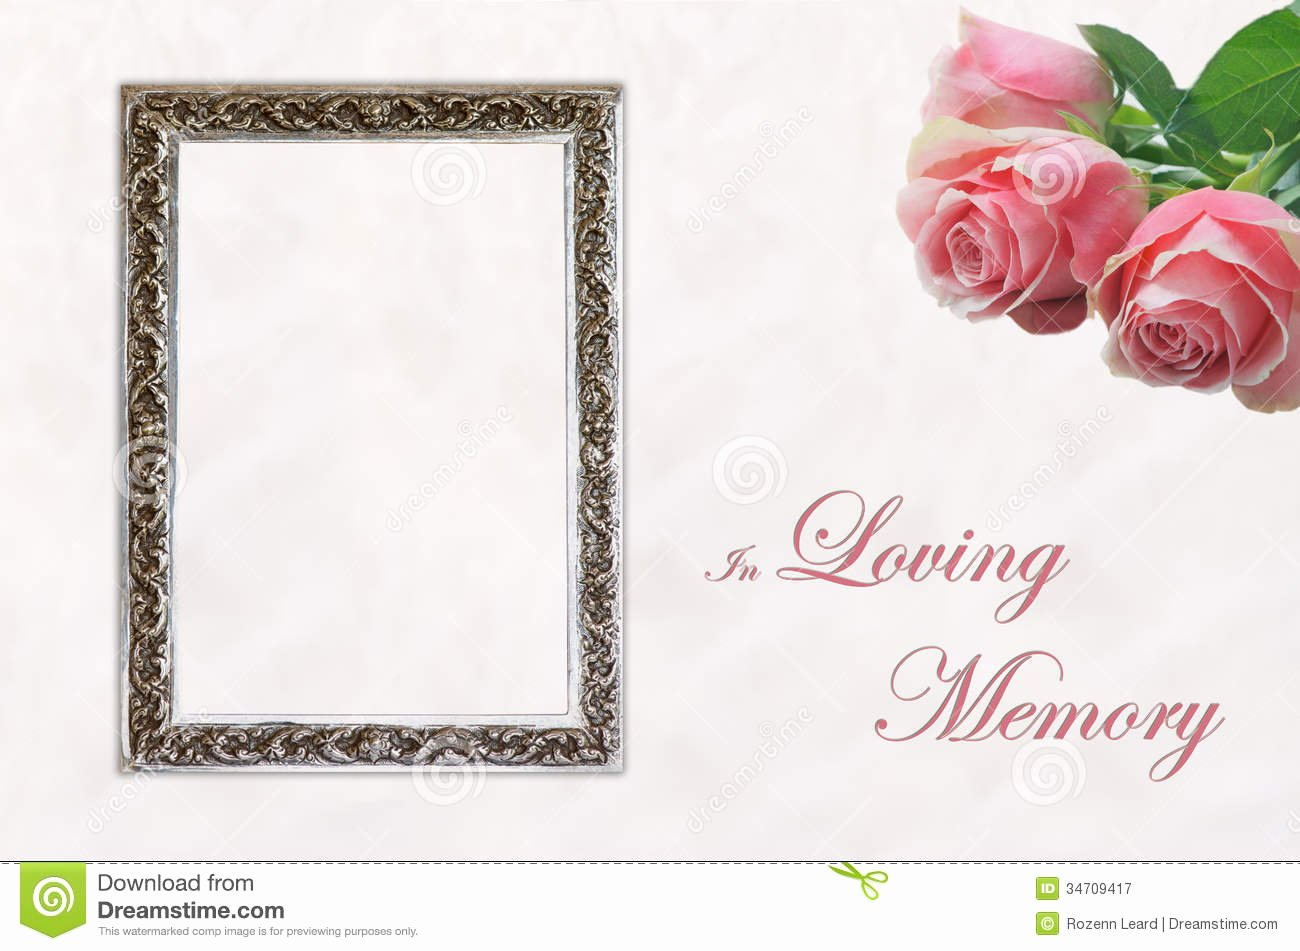 In Memory Of Template Awesome Funeral Eulogy Card Stock Image Image Of Celebration